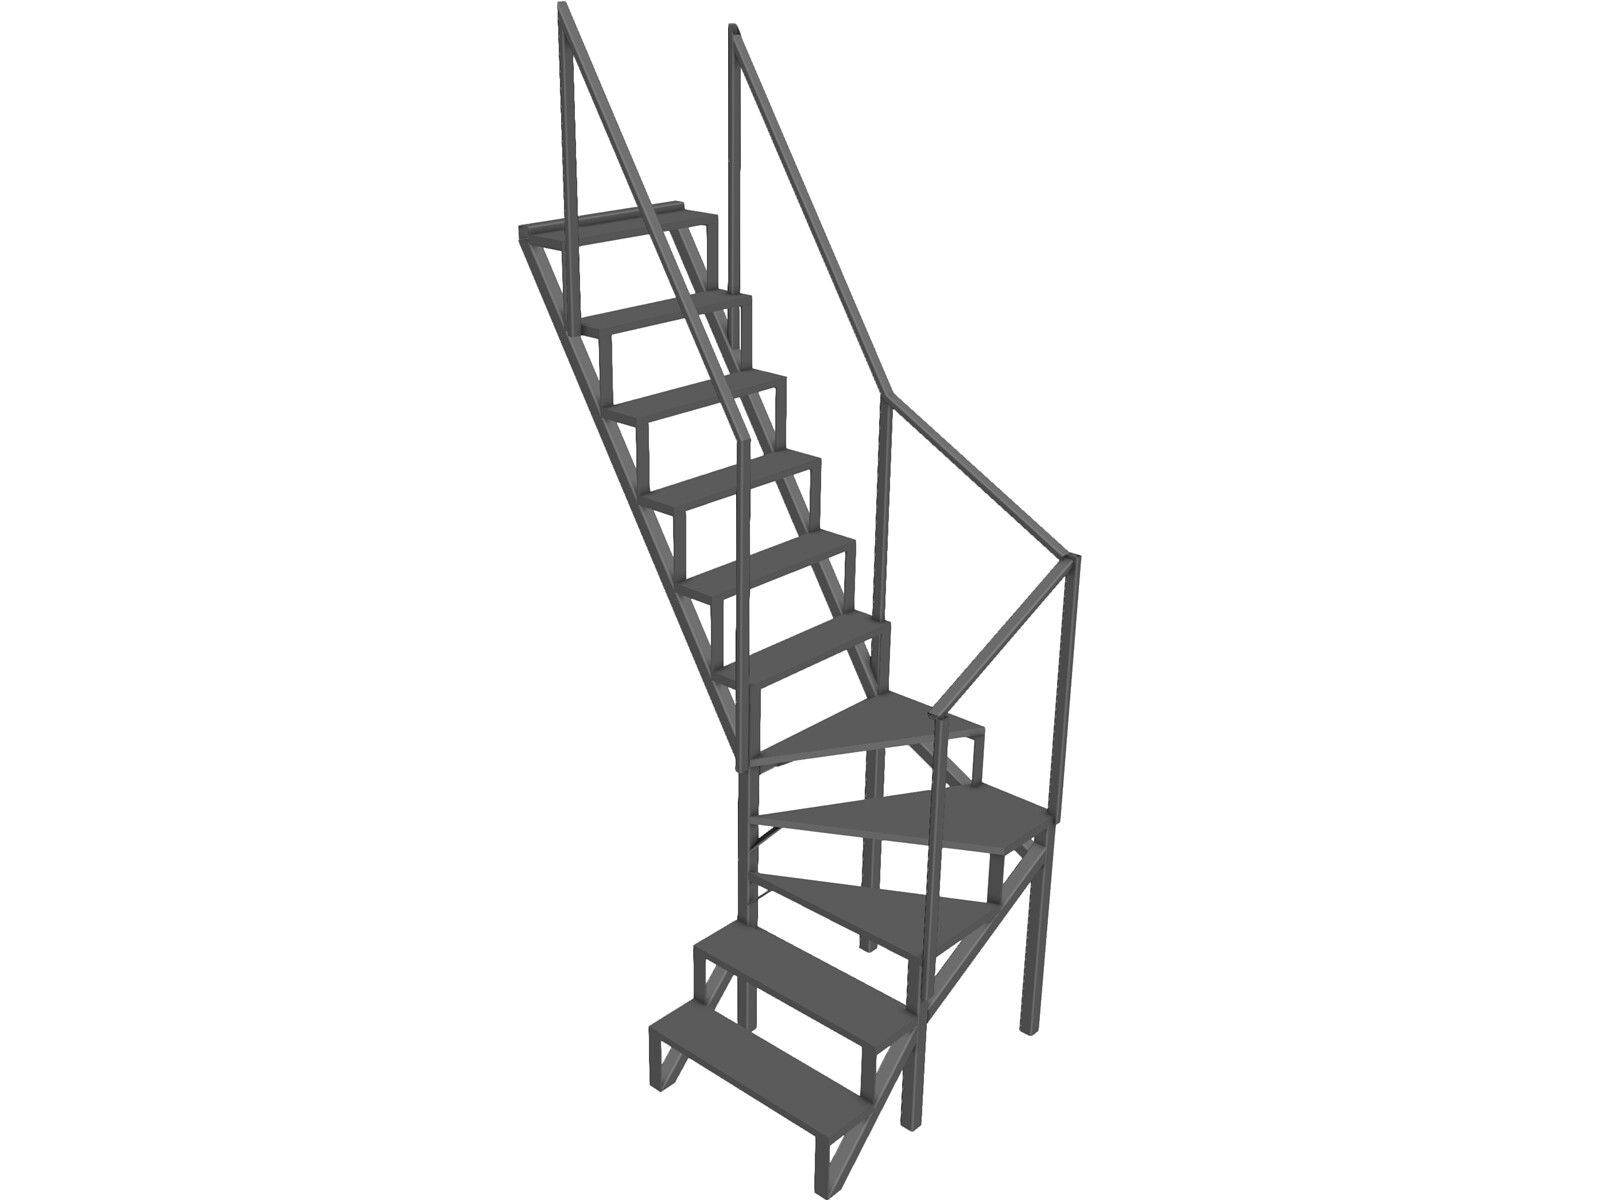 Angle Stairs Garden 3D CAD Model